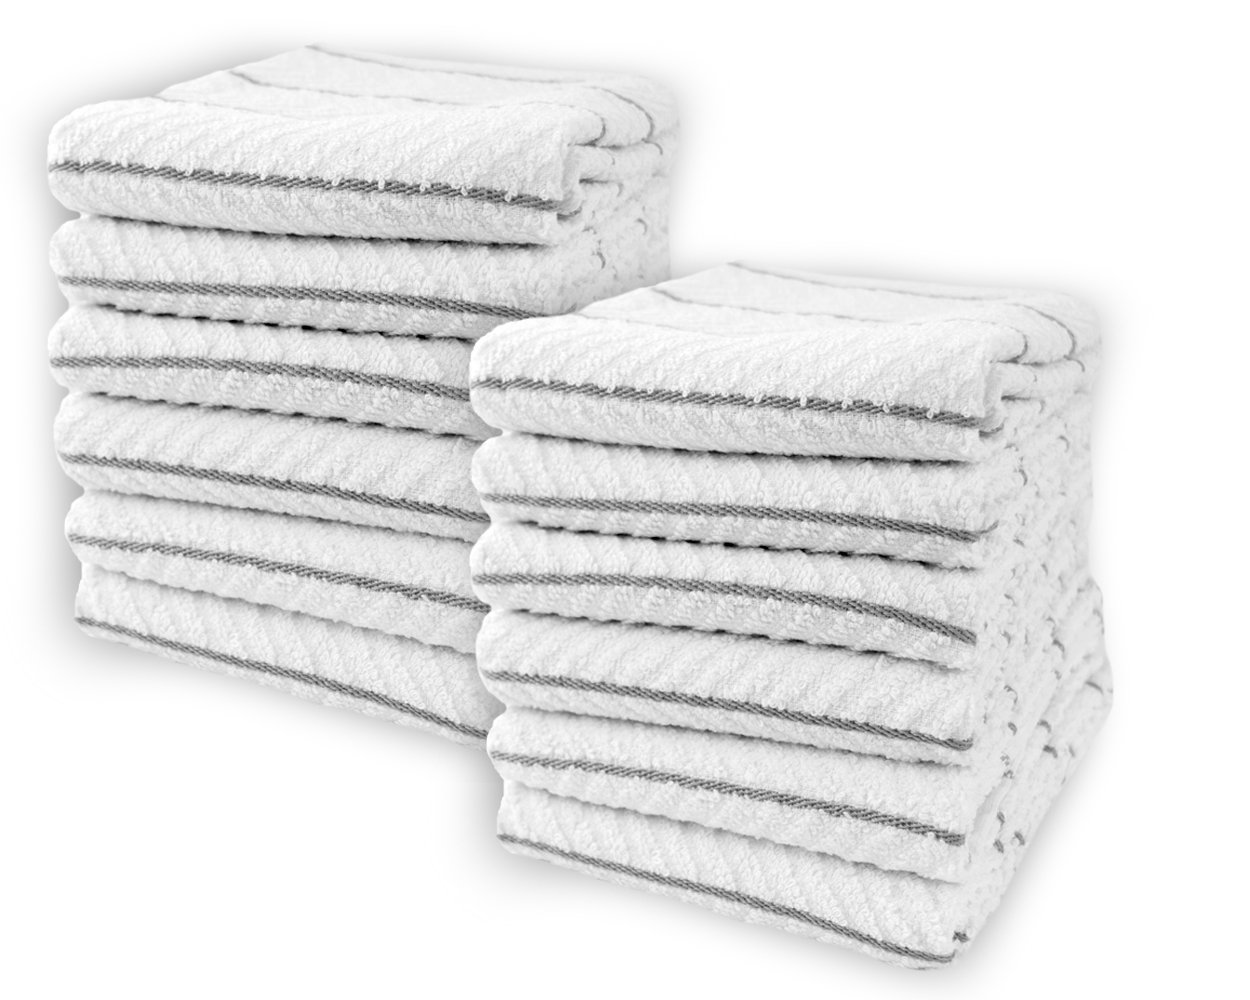 Cotton & Calm Exquisitely Absorbent Kitchen Towels Dish Cloths (12 Pack, 16'' x 26''), White with Grey Stripes 100% Cotton Dish Towels, Bar Towels- Crafted for Home, Restaurant, Bar Use